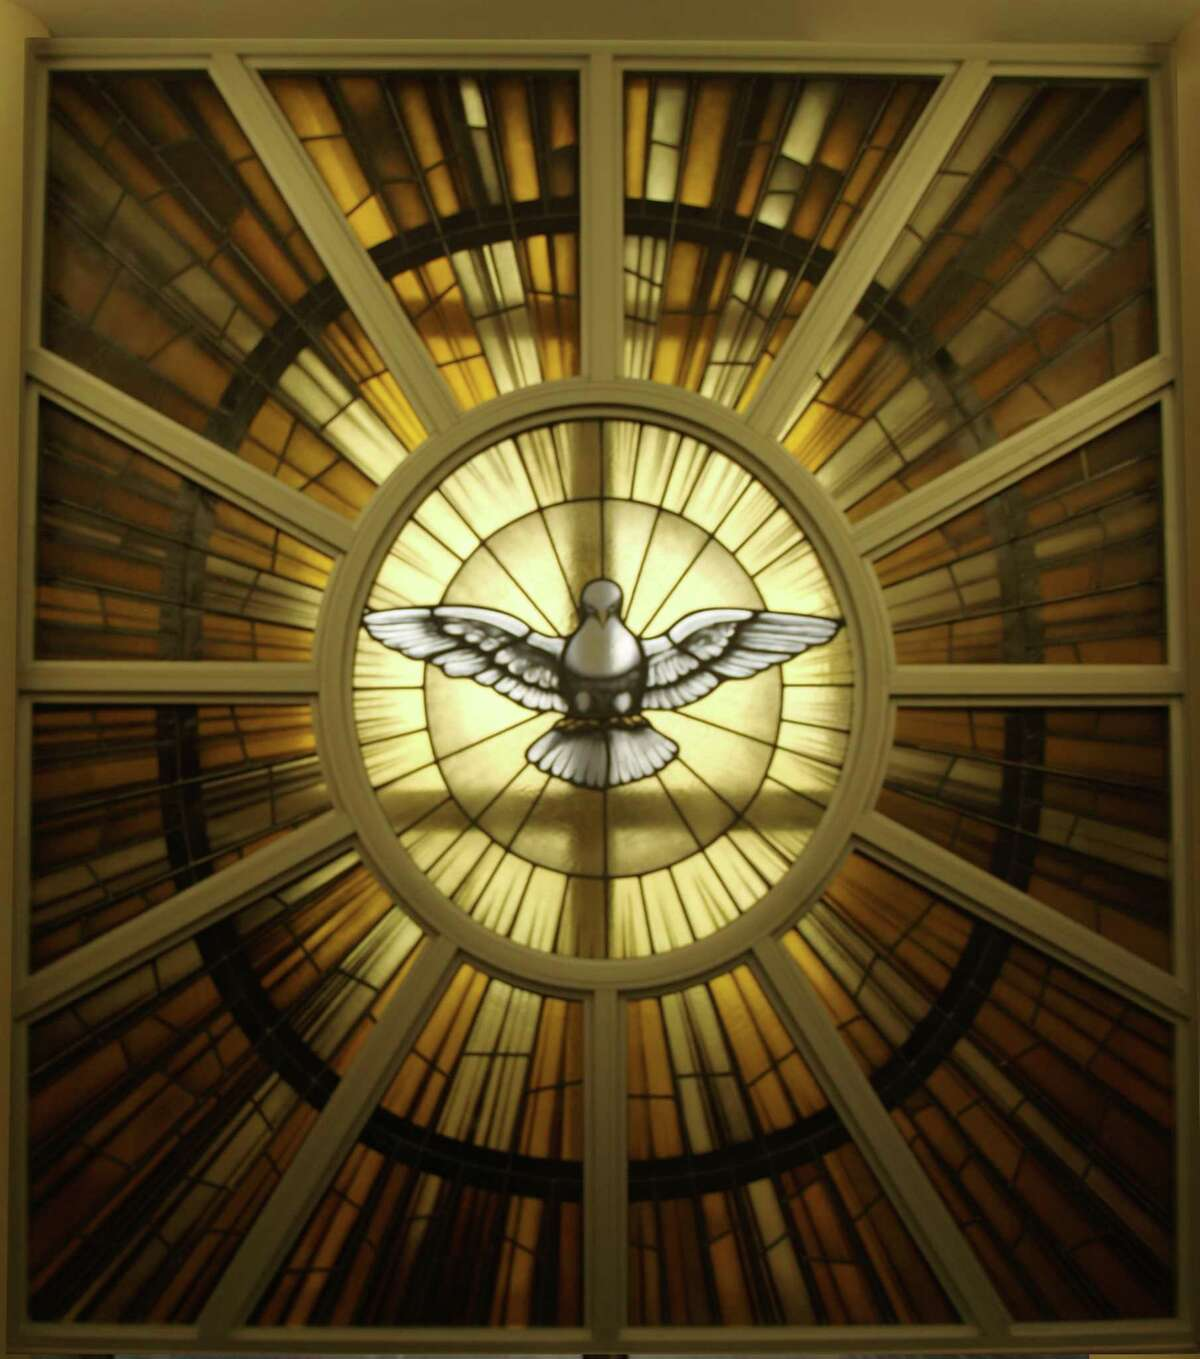 Stained glass of the Holy Spirit Dove atthe Pastoral Center of the Archdiocese of San Antonio, the work of San Antonio-based The Cavallini Co., Inc. Stained Glass Studio.